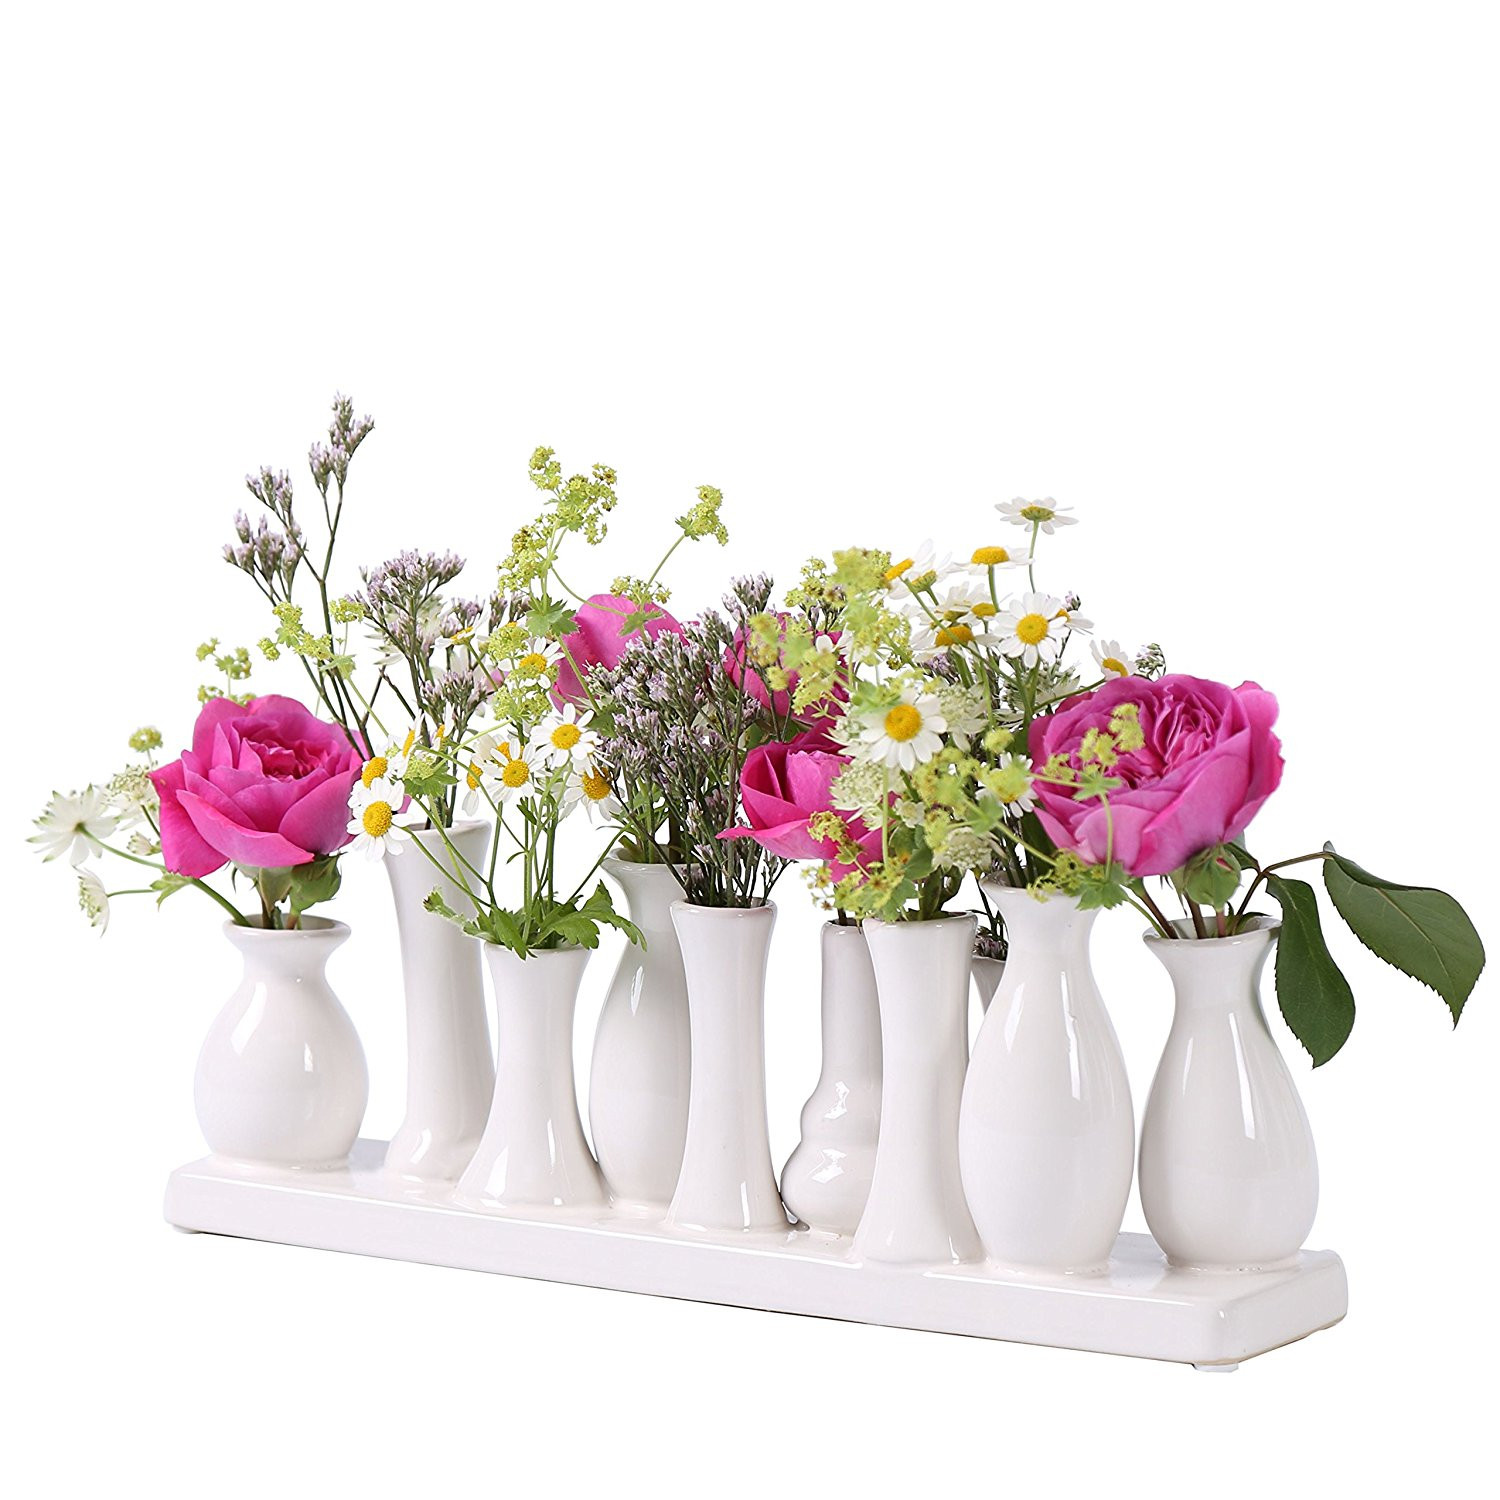 Ceramic vase set flower vase ceramic vase colorful white vase flower plant ceramic set decoration 3 sets of 10 vases white Amazon Kitchen &